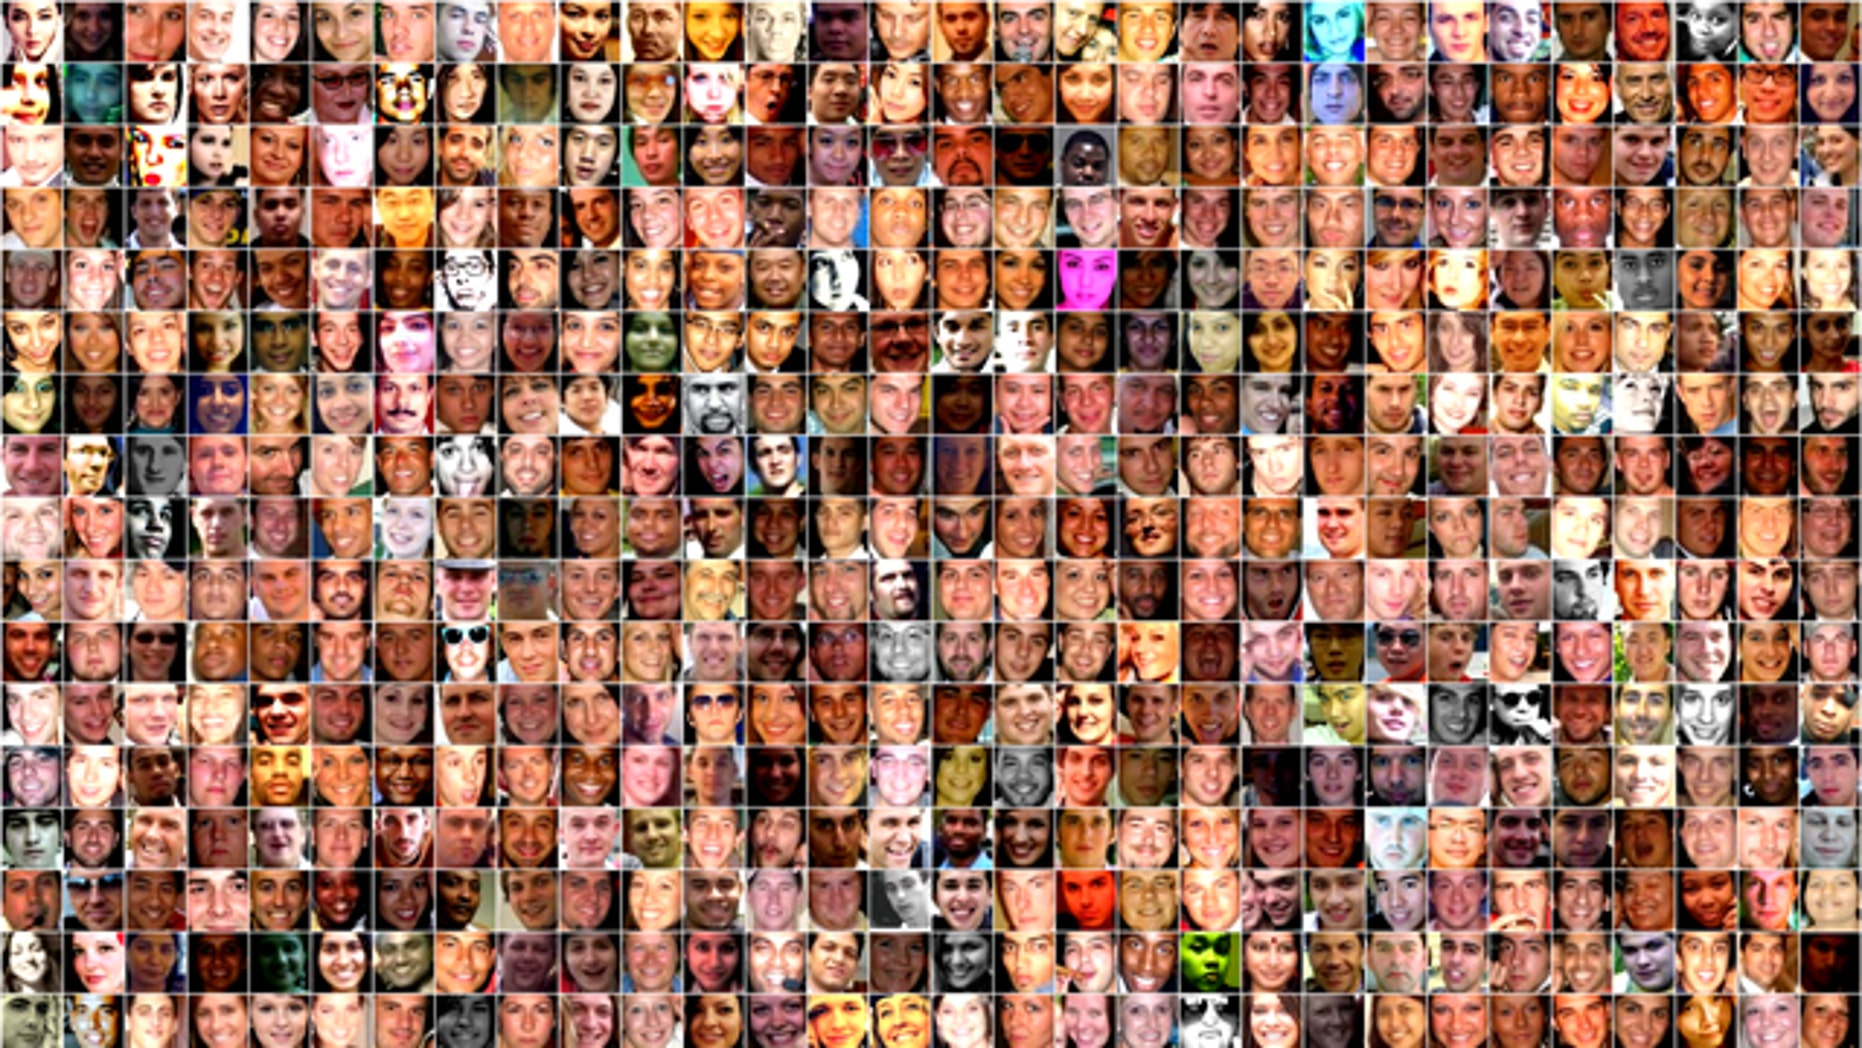 A composite image shows some of the billions of profiles on Facebook.